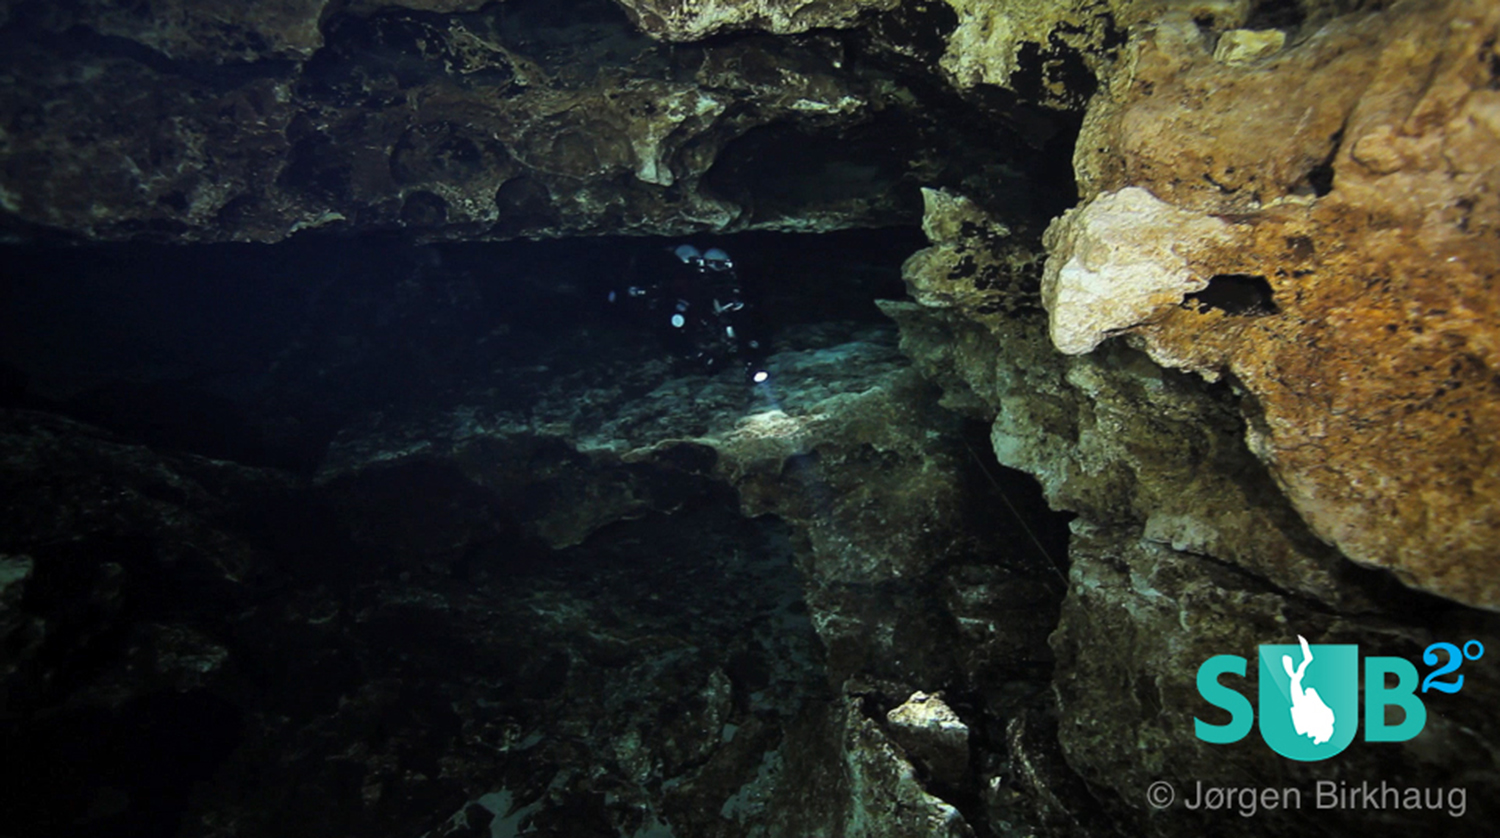 A diver coming through the area known as The Lips in Devil's Eye Cave.